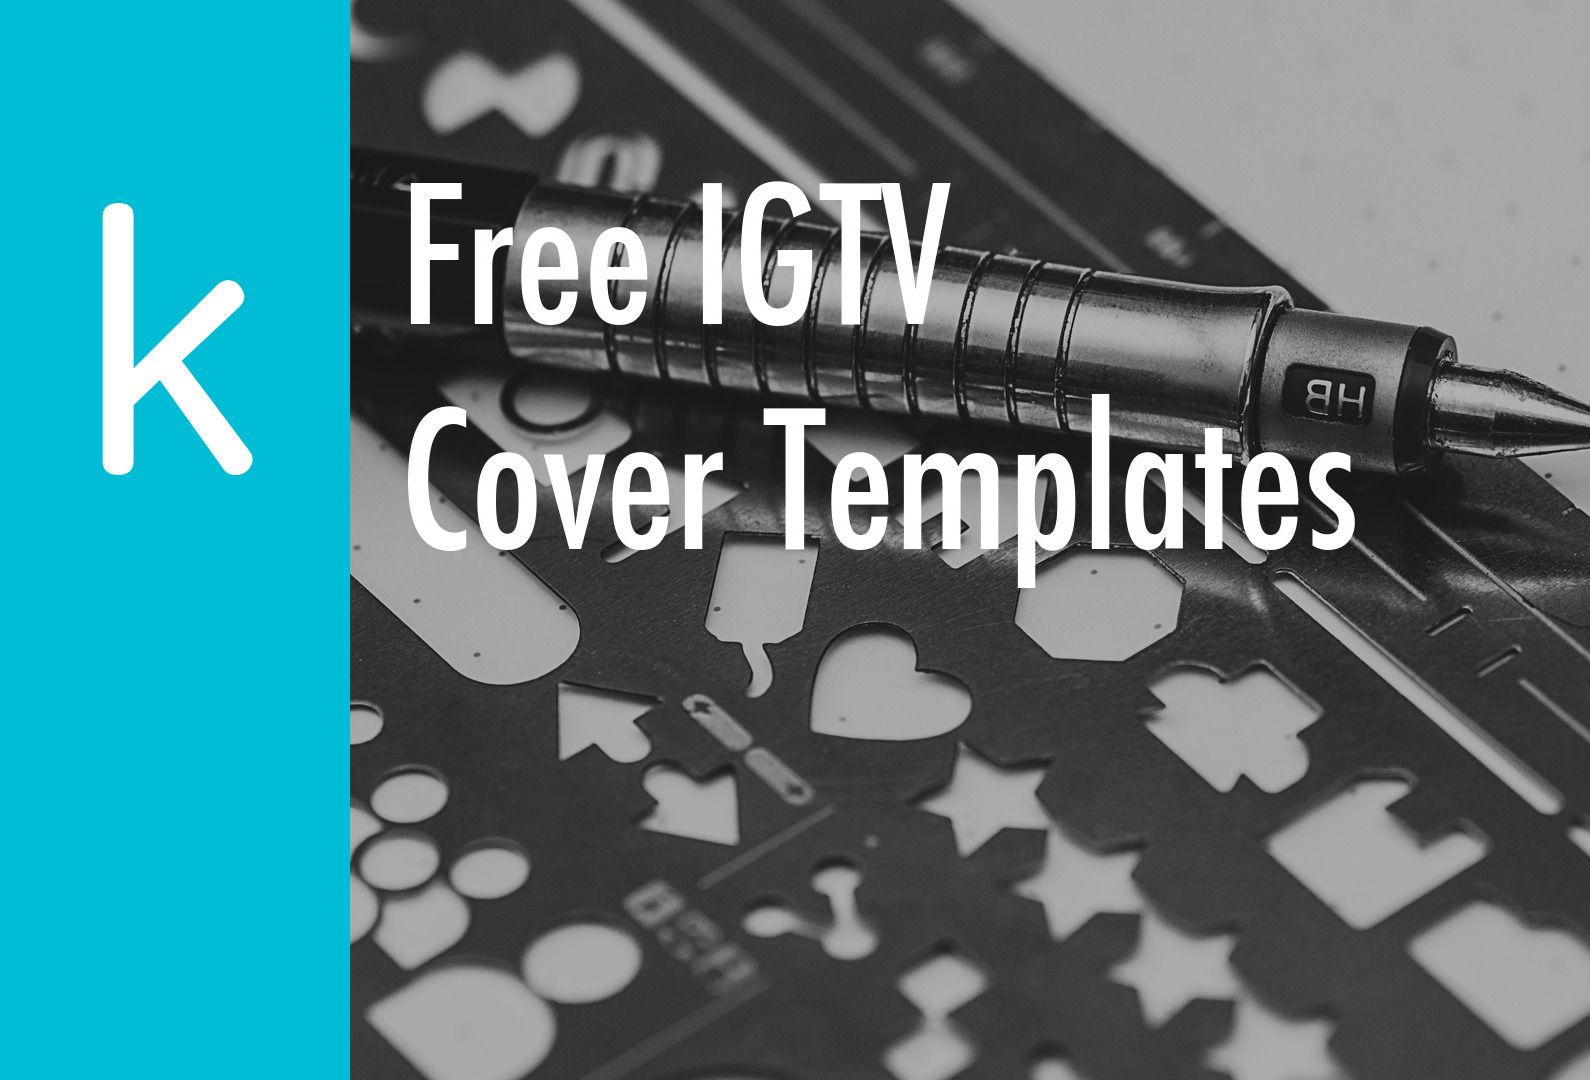 IGTV Cover Thumbnail Dimensions and Templates - The K Guy